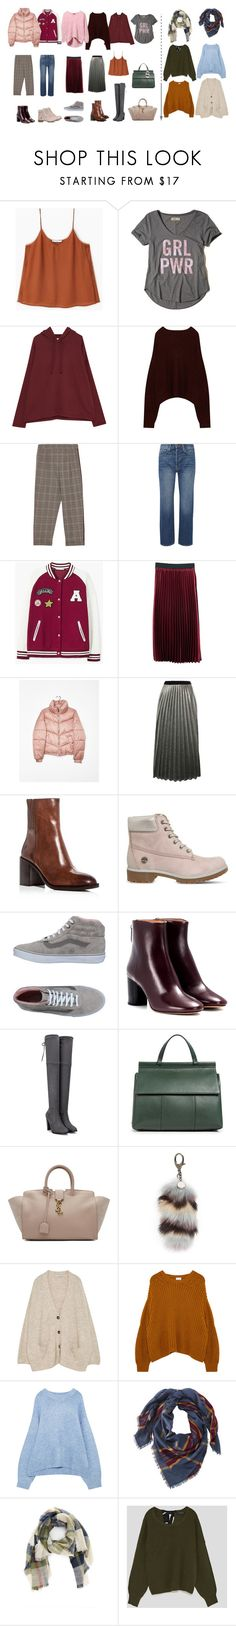 """new capsule and mini wishlist"" by kmarina ❤ liked on Polyvore featuring MANGO, Hollister Co., Frame, Bershka, Sans Souci, Frye, Timberland, Vans, Isabel Marant and Tory Burch"